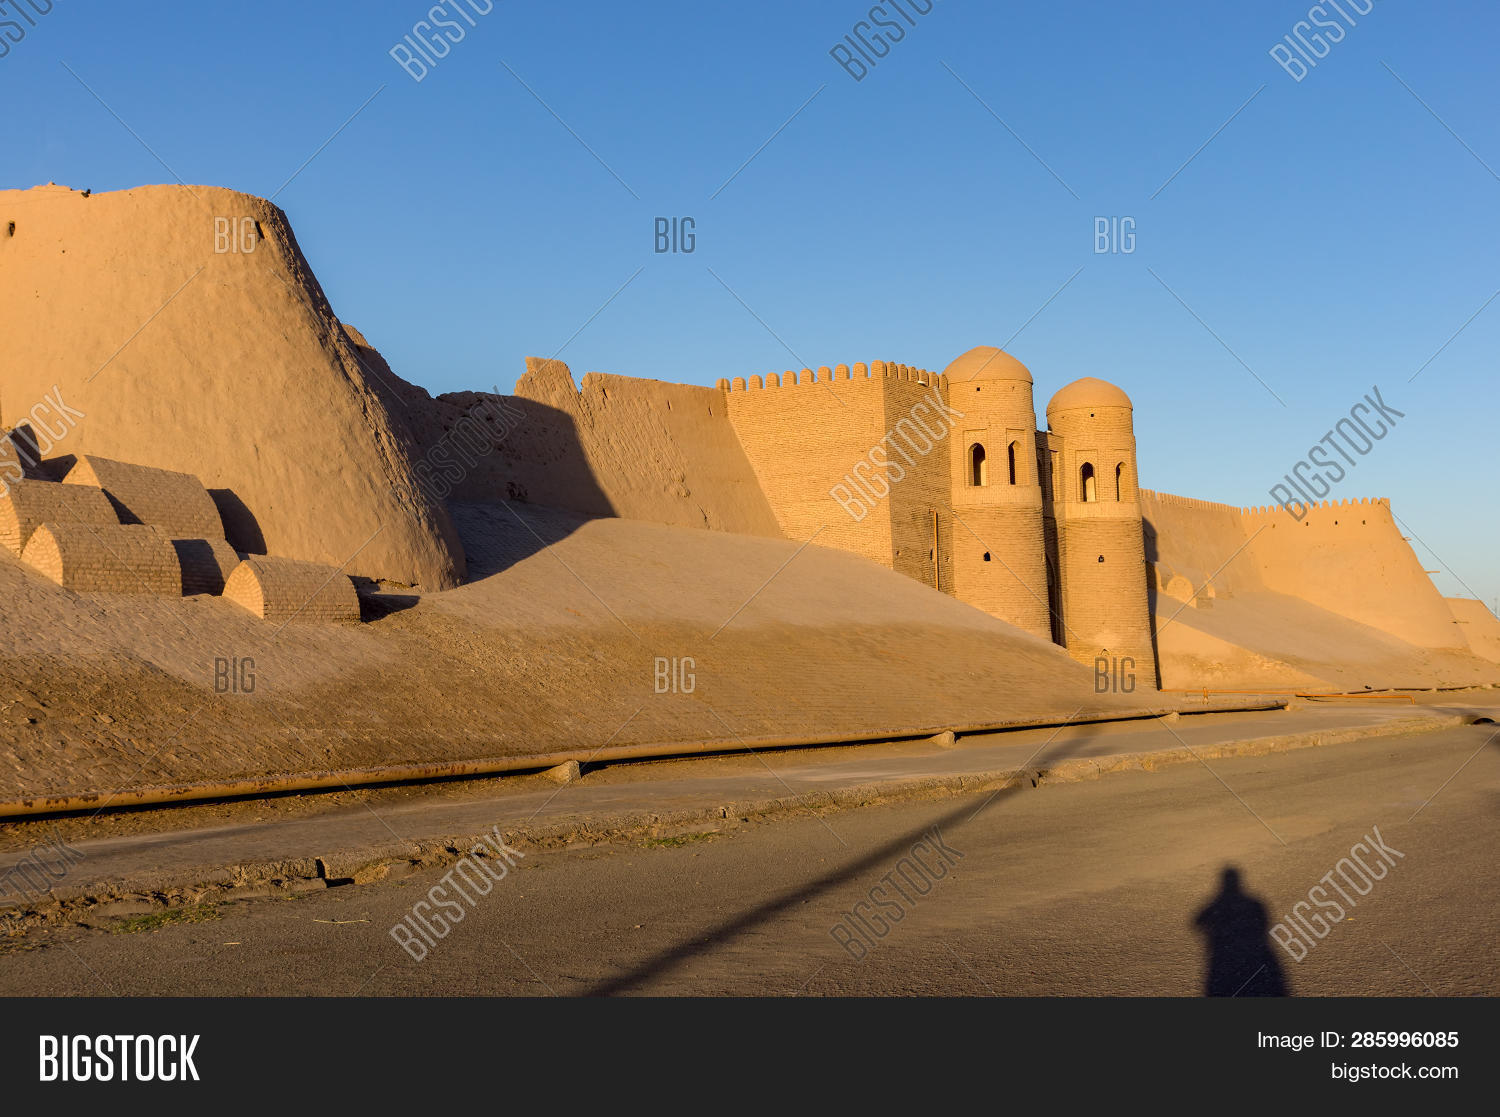 City Of South Gate >> Shadow Photographer Image Photo Free Trial Bigstock